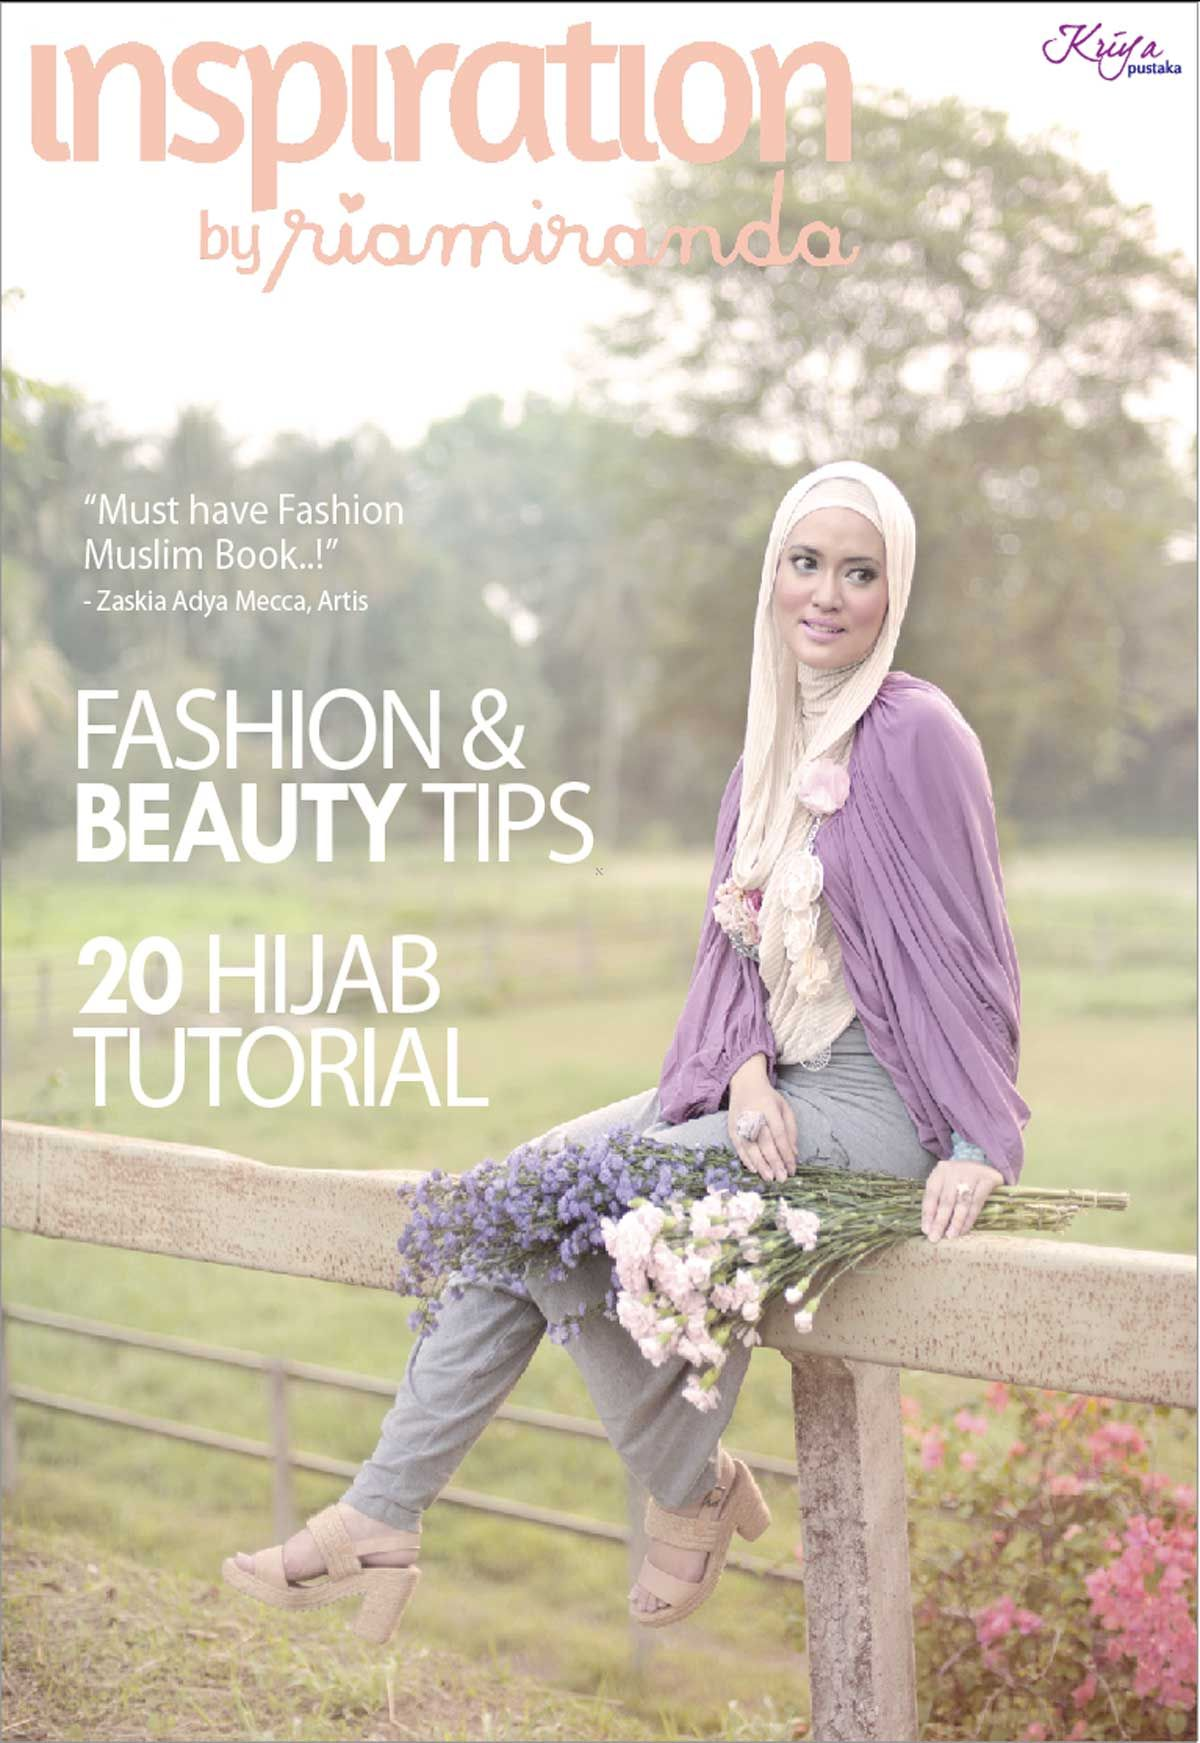 Inspiration By Riamiranda My First Fashion Book Consist Of 30